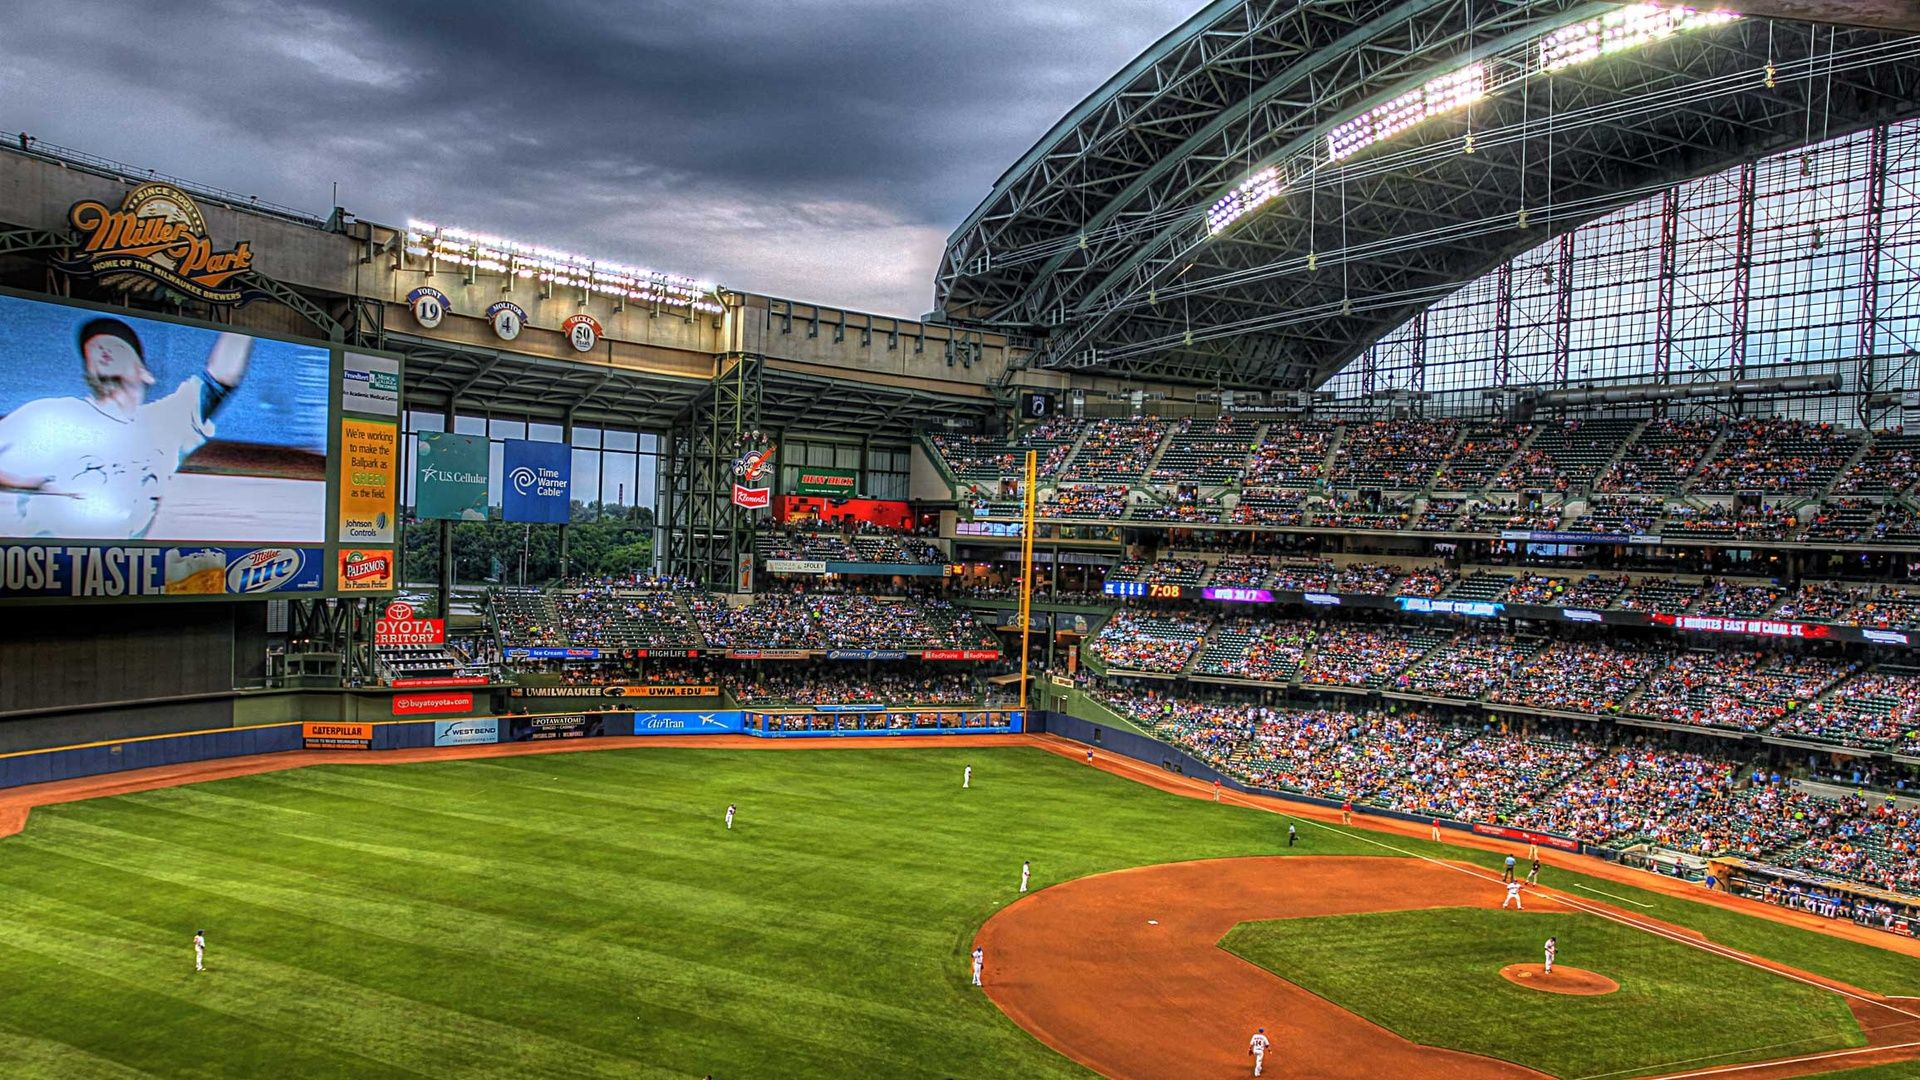 Baseball Mlb Colorado Rockies Stadium Sports 1920x1080 Desktop Wallpaper